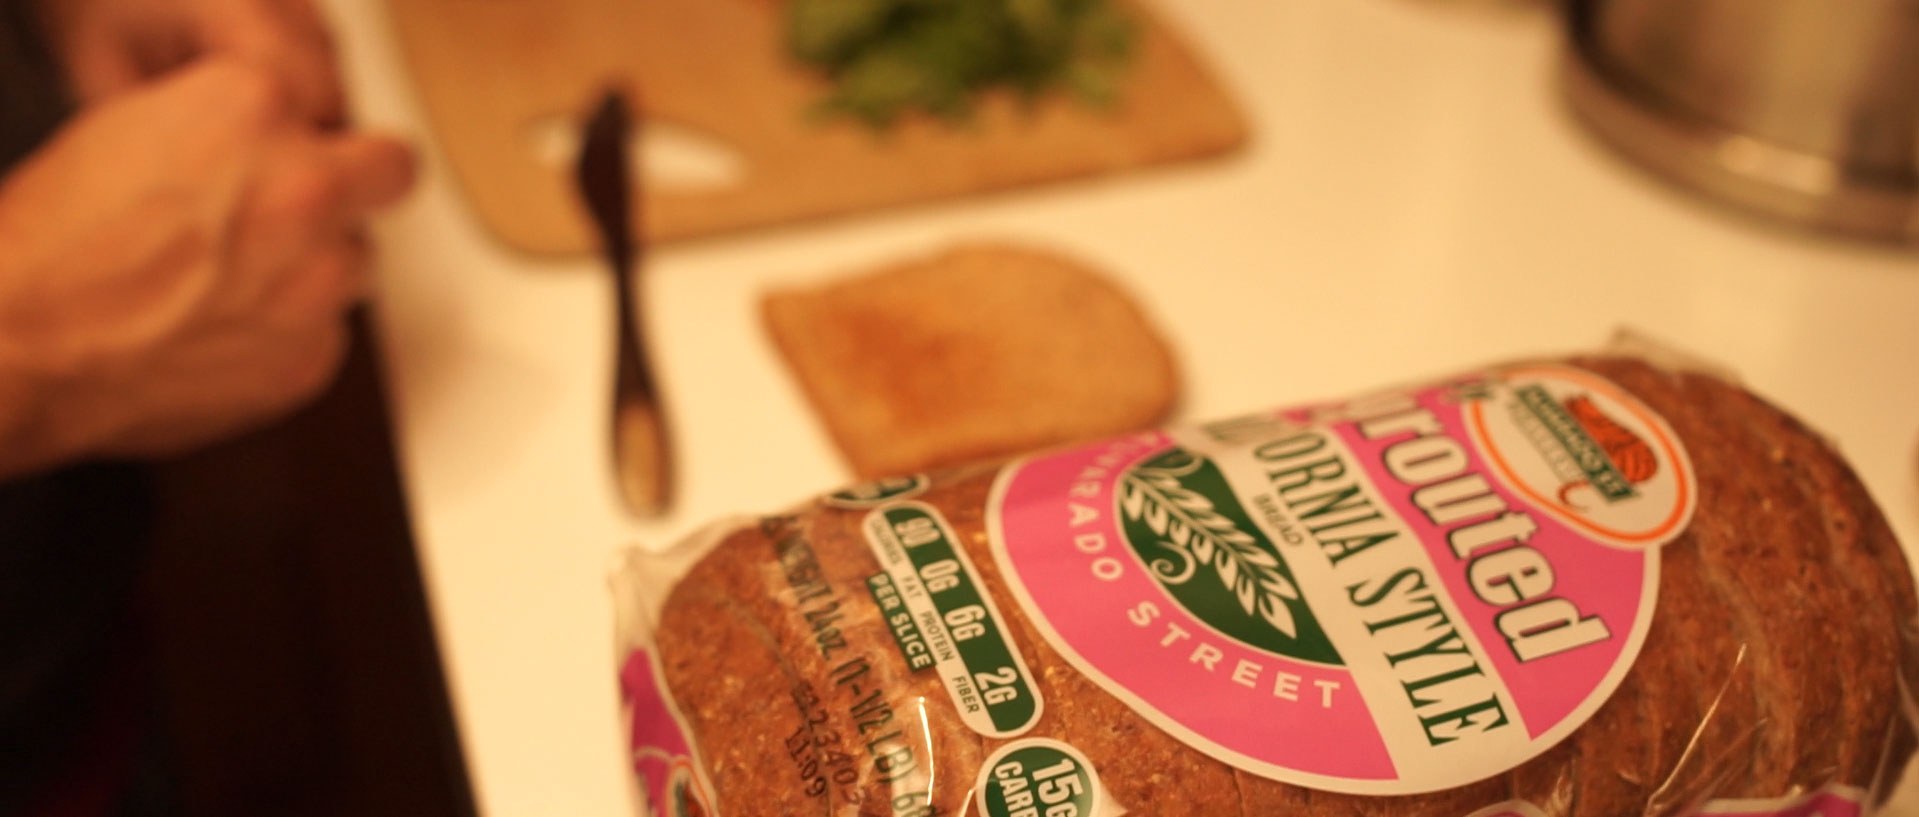 organic healthy breads